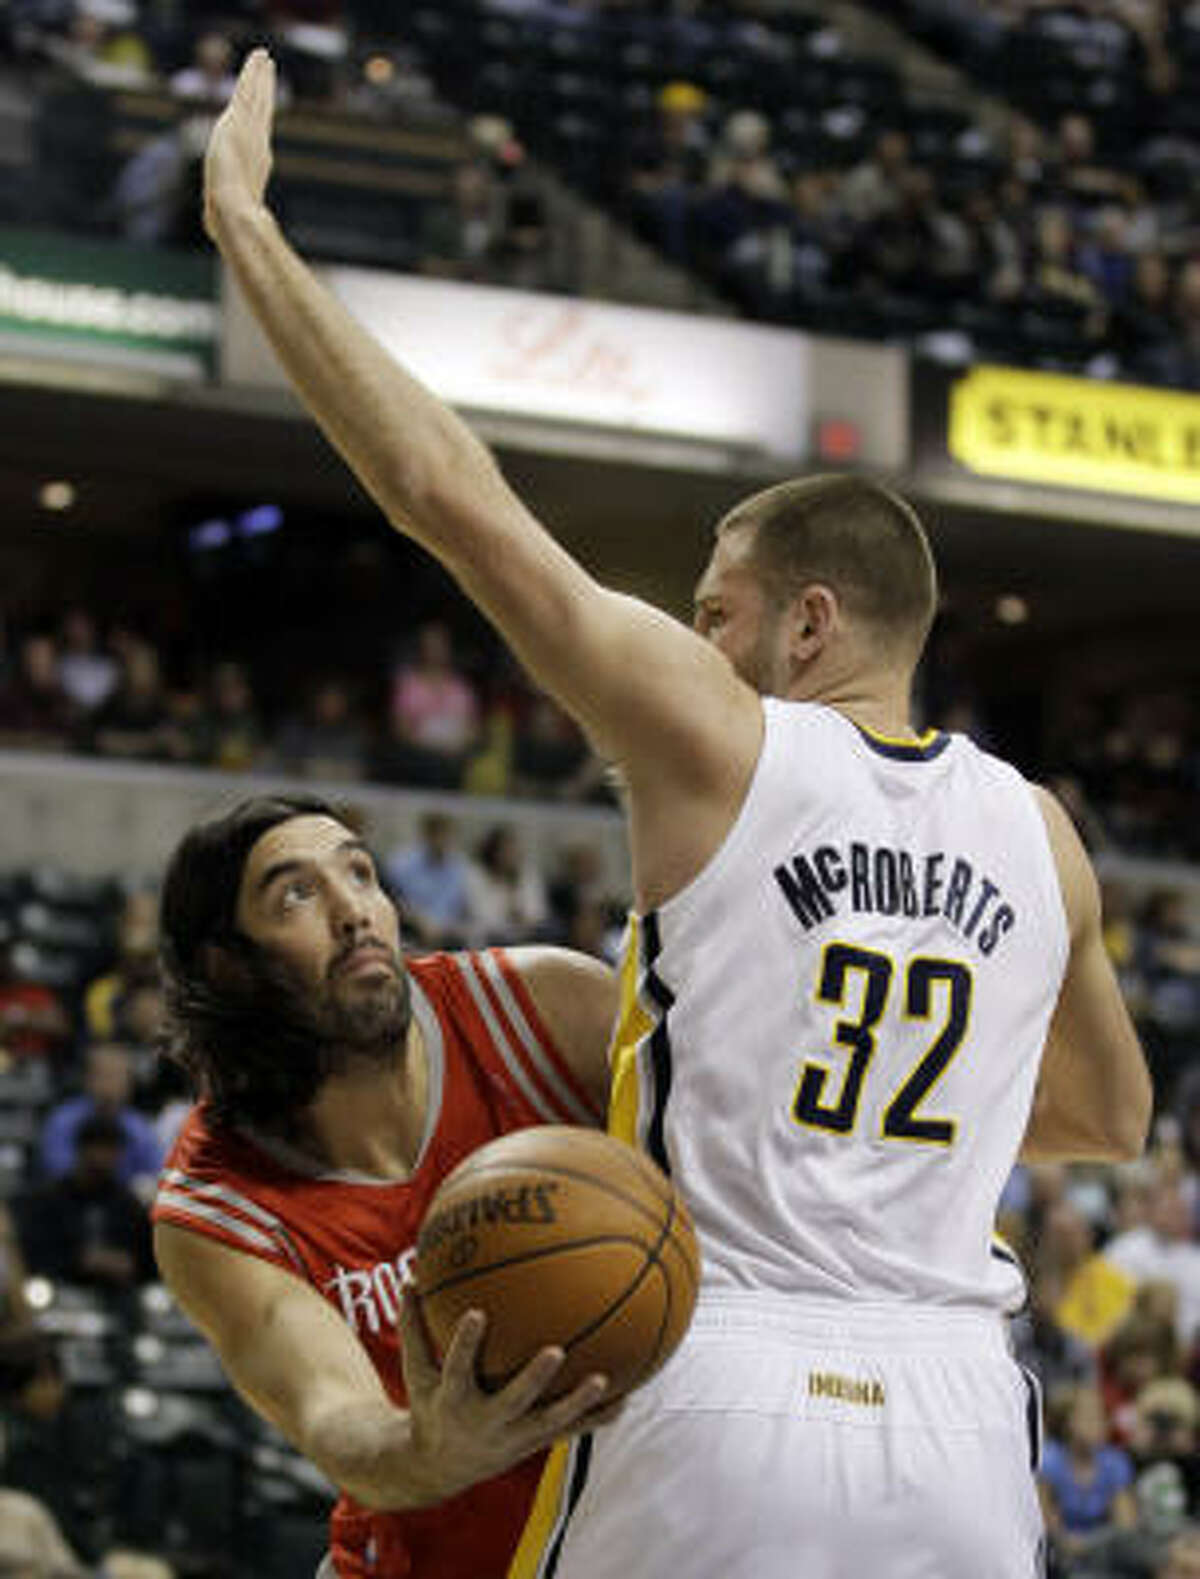 Rockets forward Luis Scola, left, puts up a shot against Pacers forward Josh McRoberts during the first quarter on Friday night.